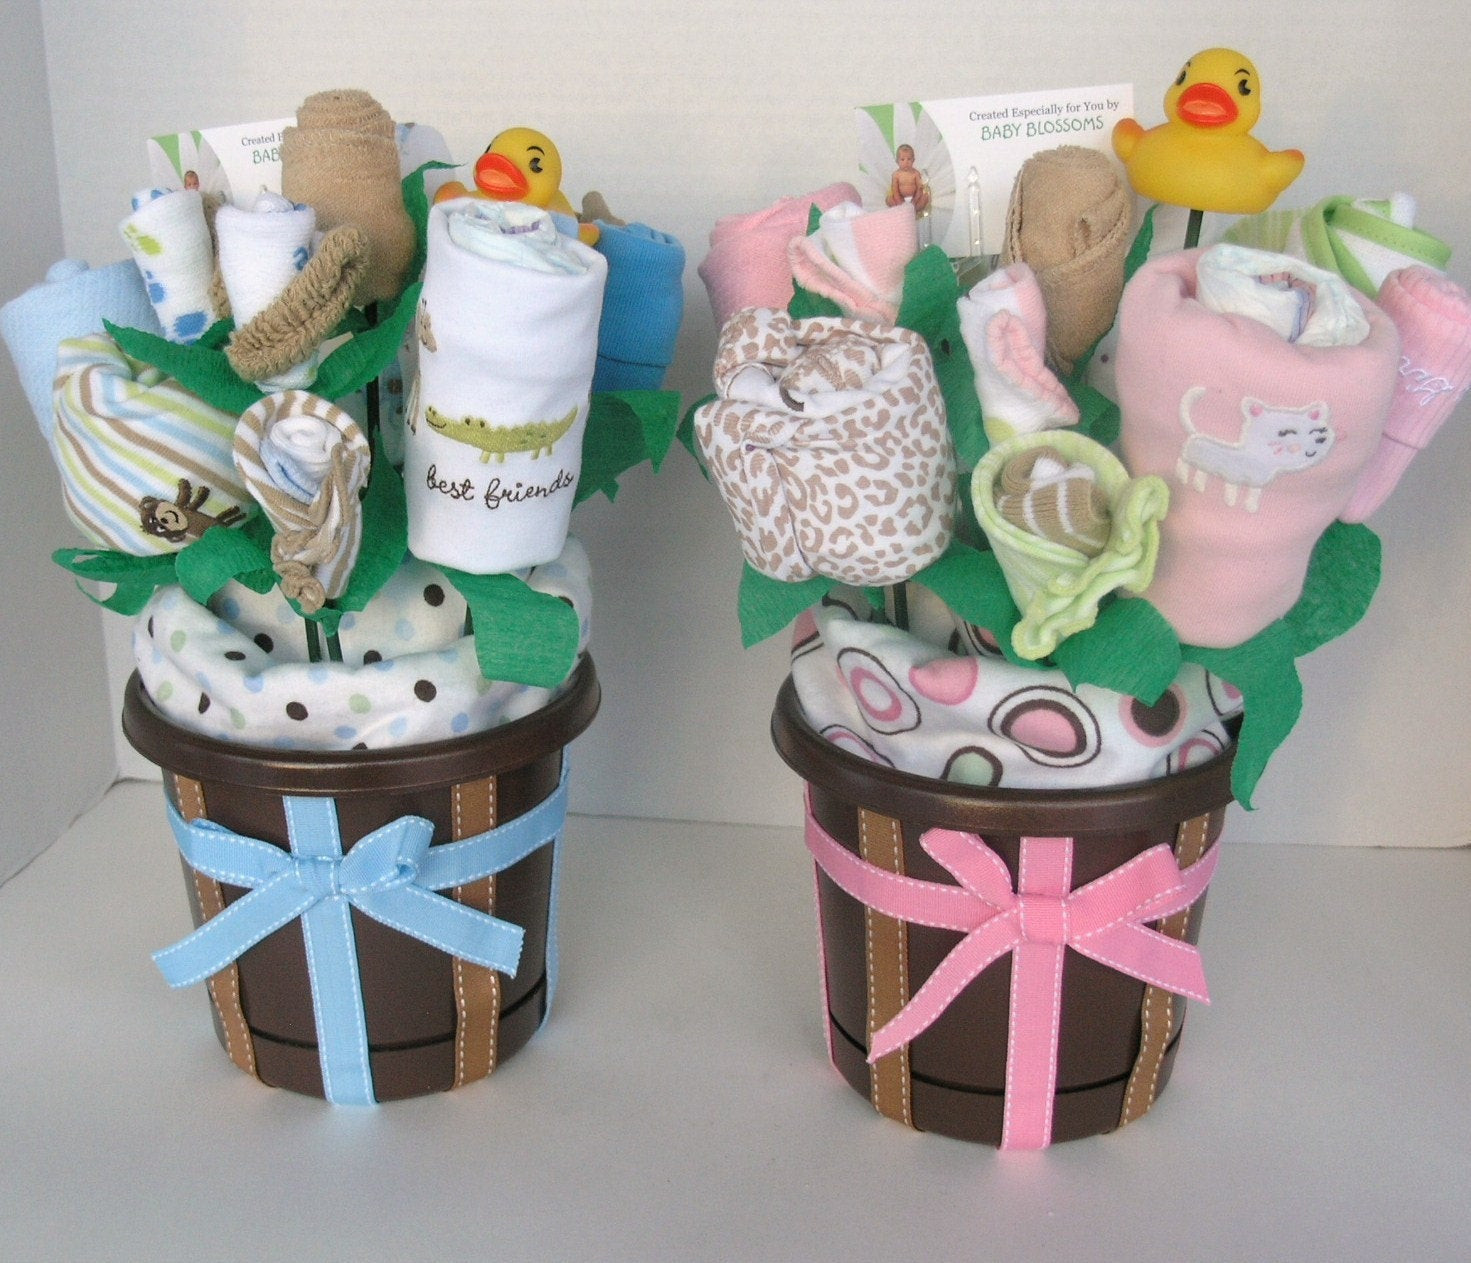 Best ideas about Twin Baby Gift Ideas . Save or Pin Twin Baby Gift Bouquets Made to Order Now.